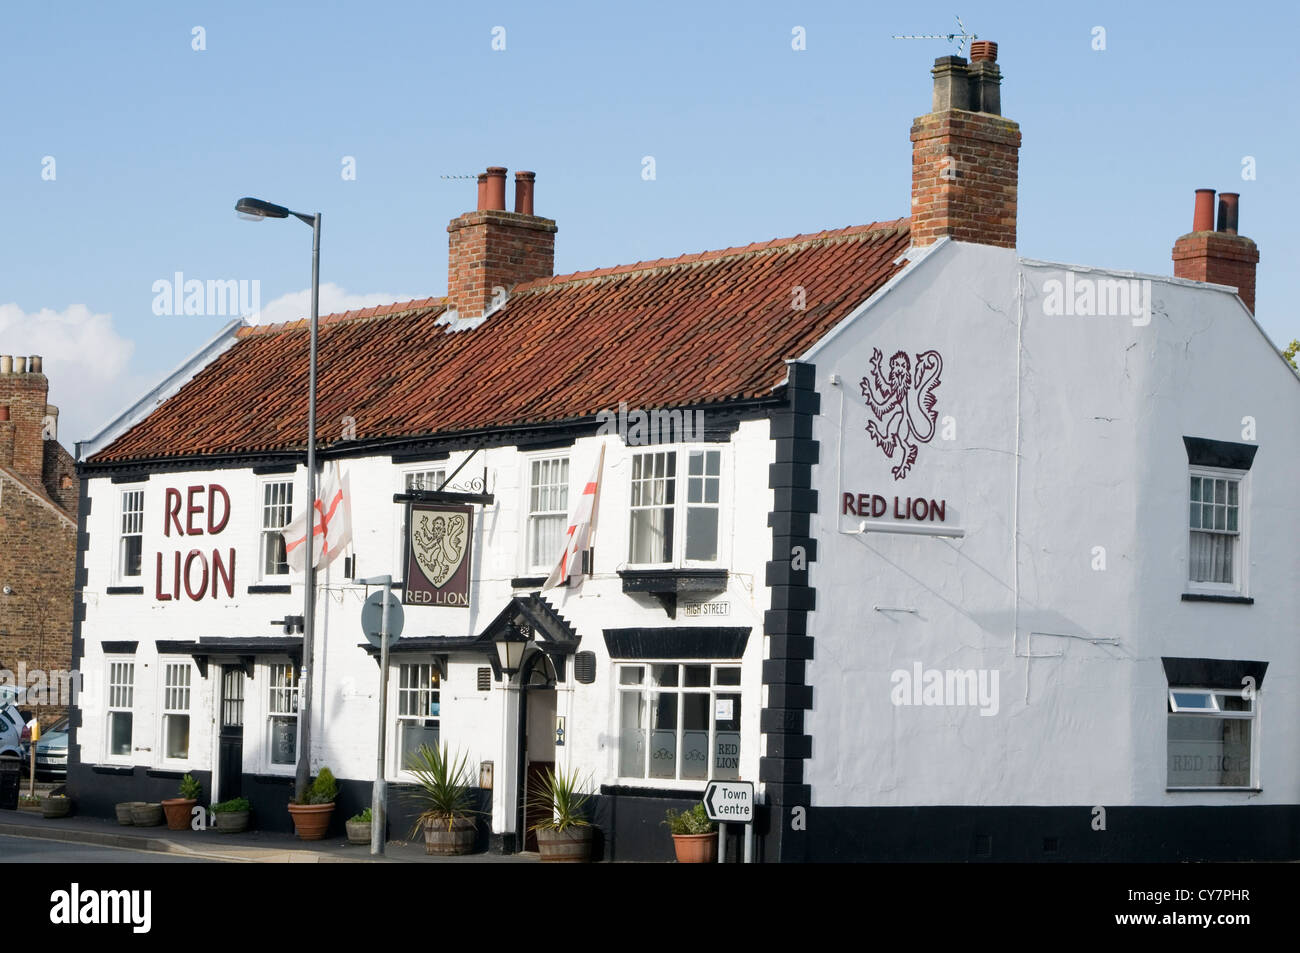 red lion english village pub uk public house pubs bar bars traditional boozer - Stock Image